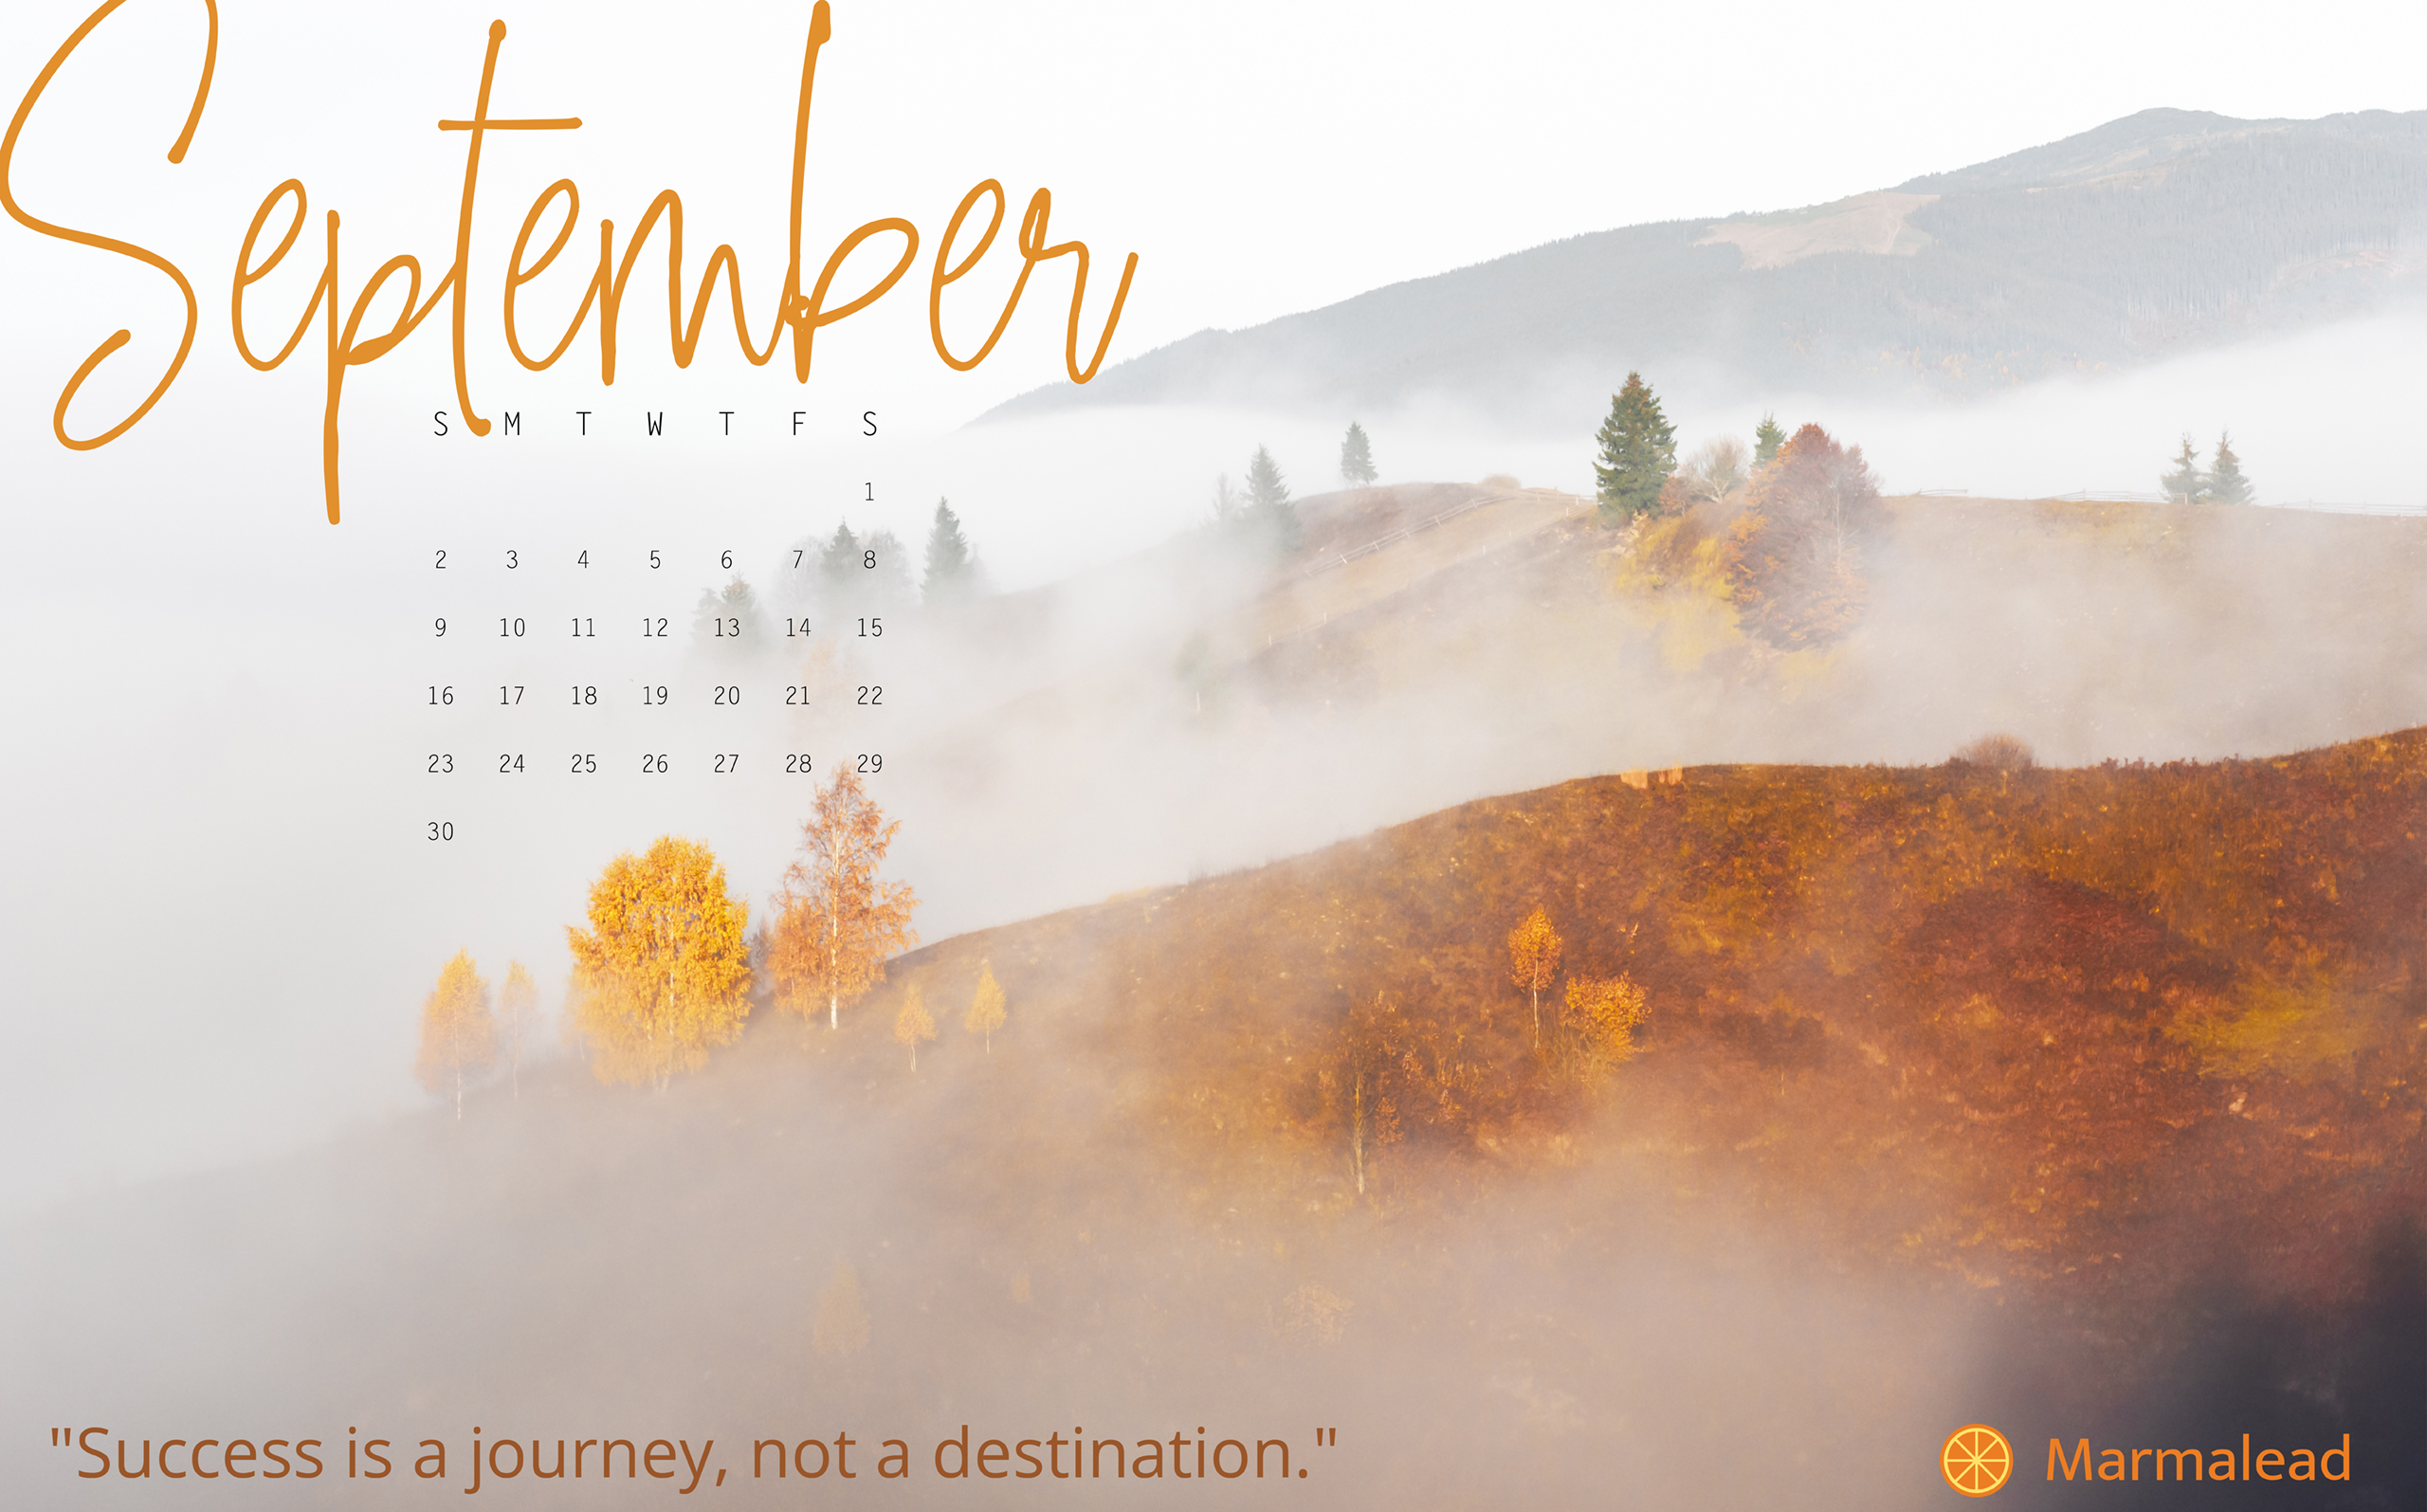 September 2018 Desktop Calendar from Marmalead 2560x1595